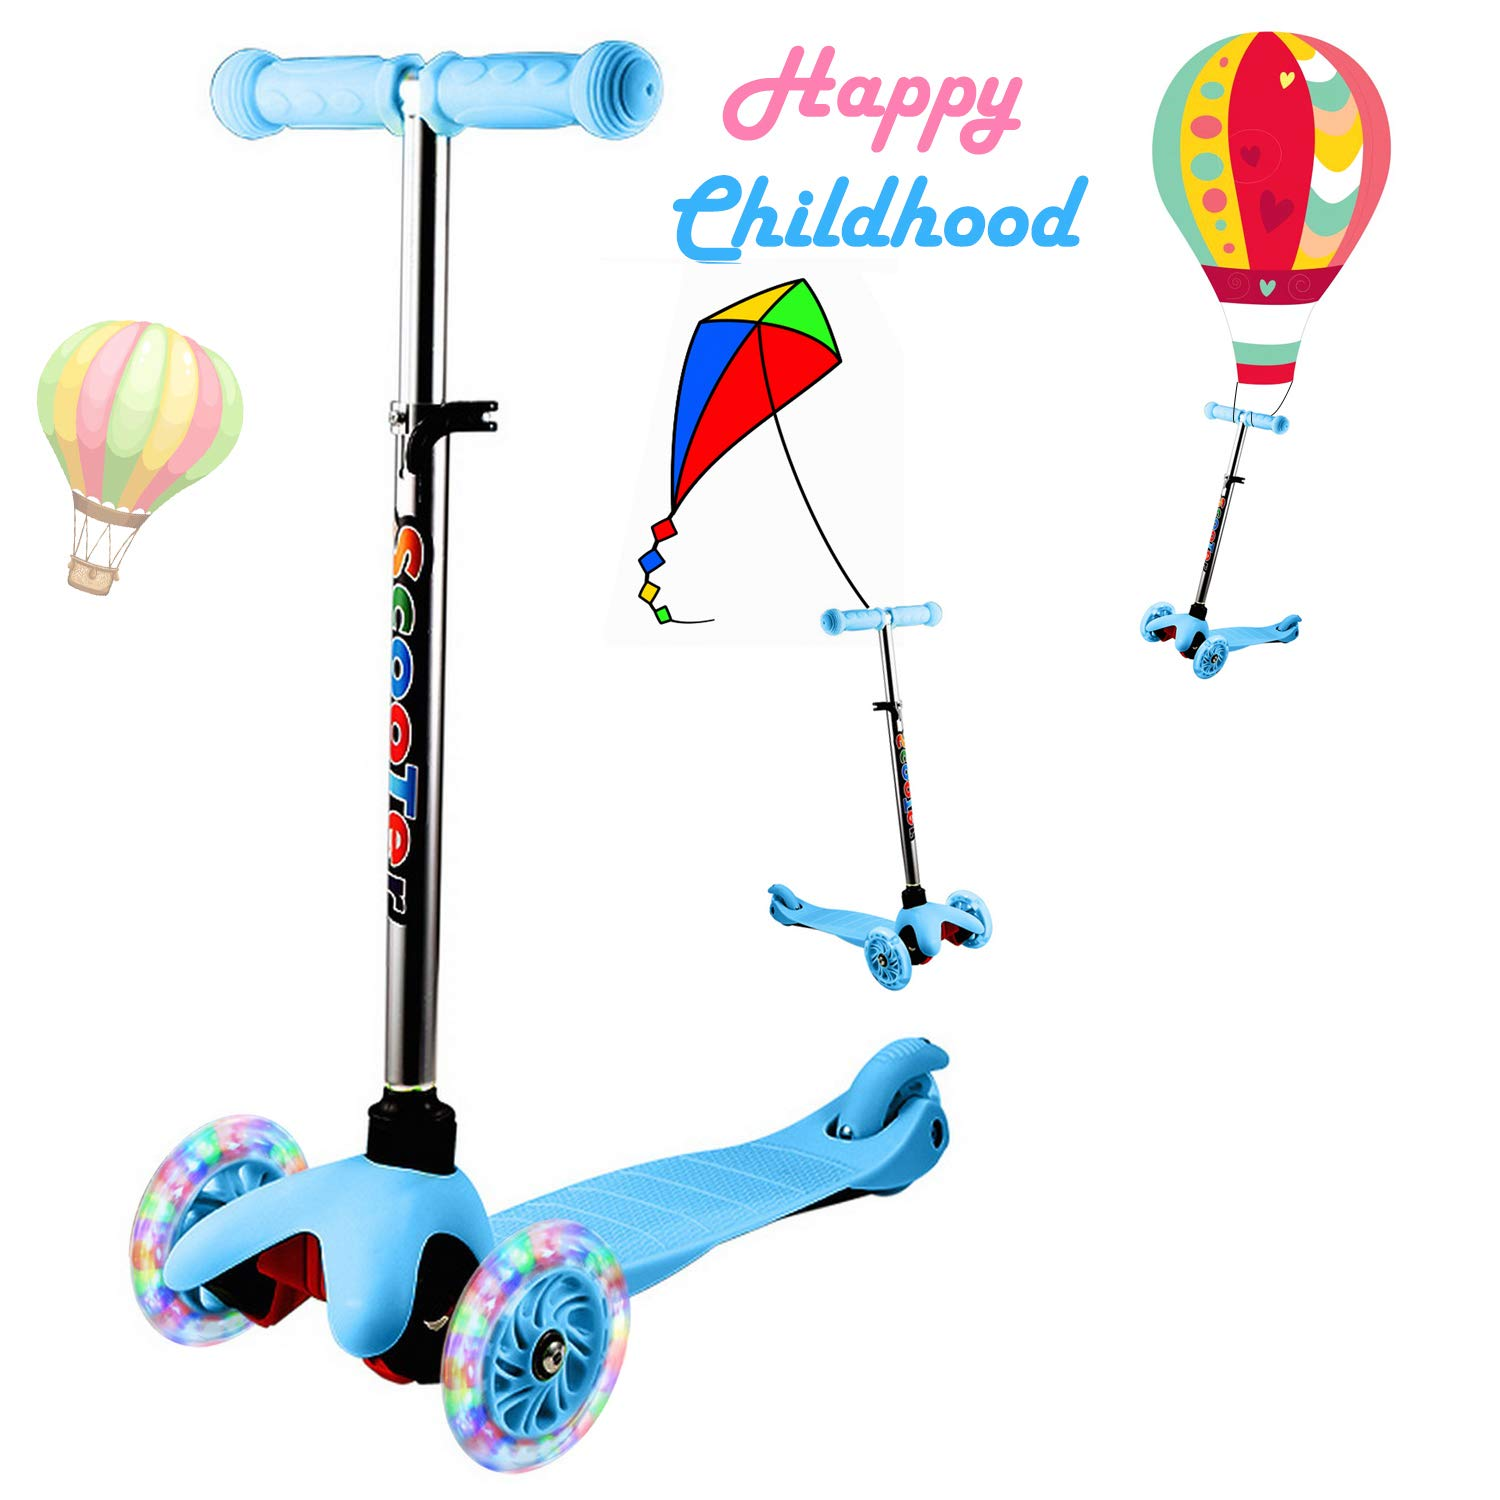 Kick Scooter for Kids with 3 PU LED Light up Wheels Adjustable Height Lean to Steer Extra Wide Deck Scooter Gift for Girls Boys Toddlers Age 3 up